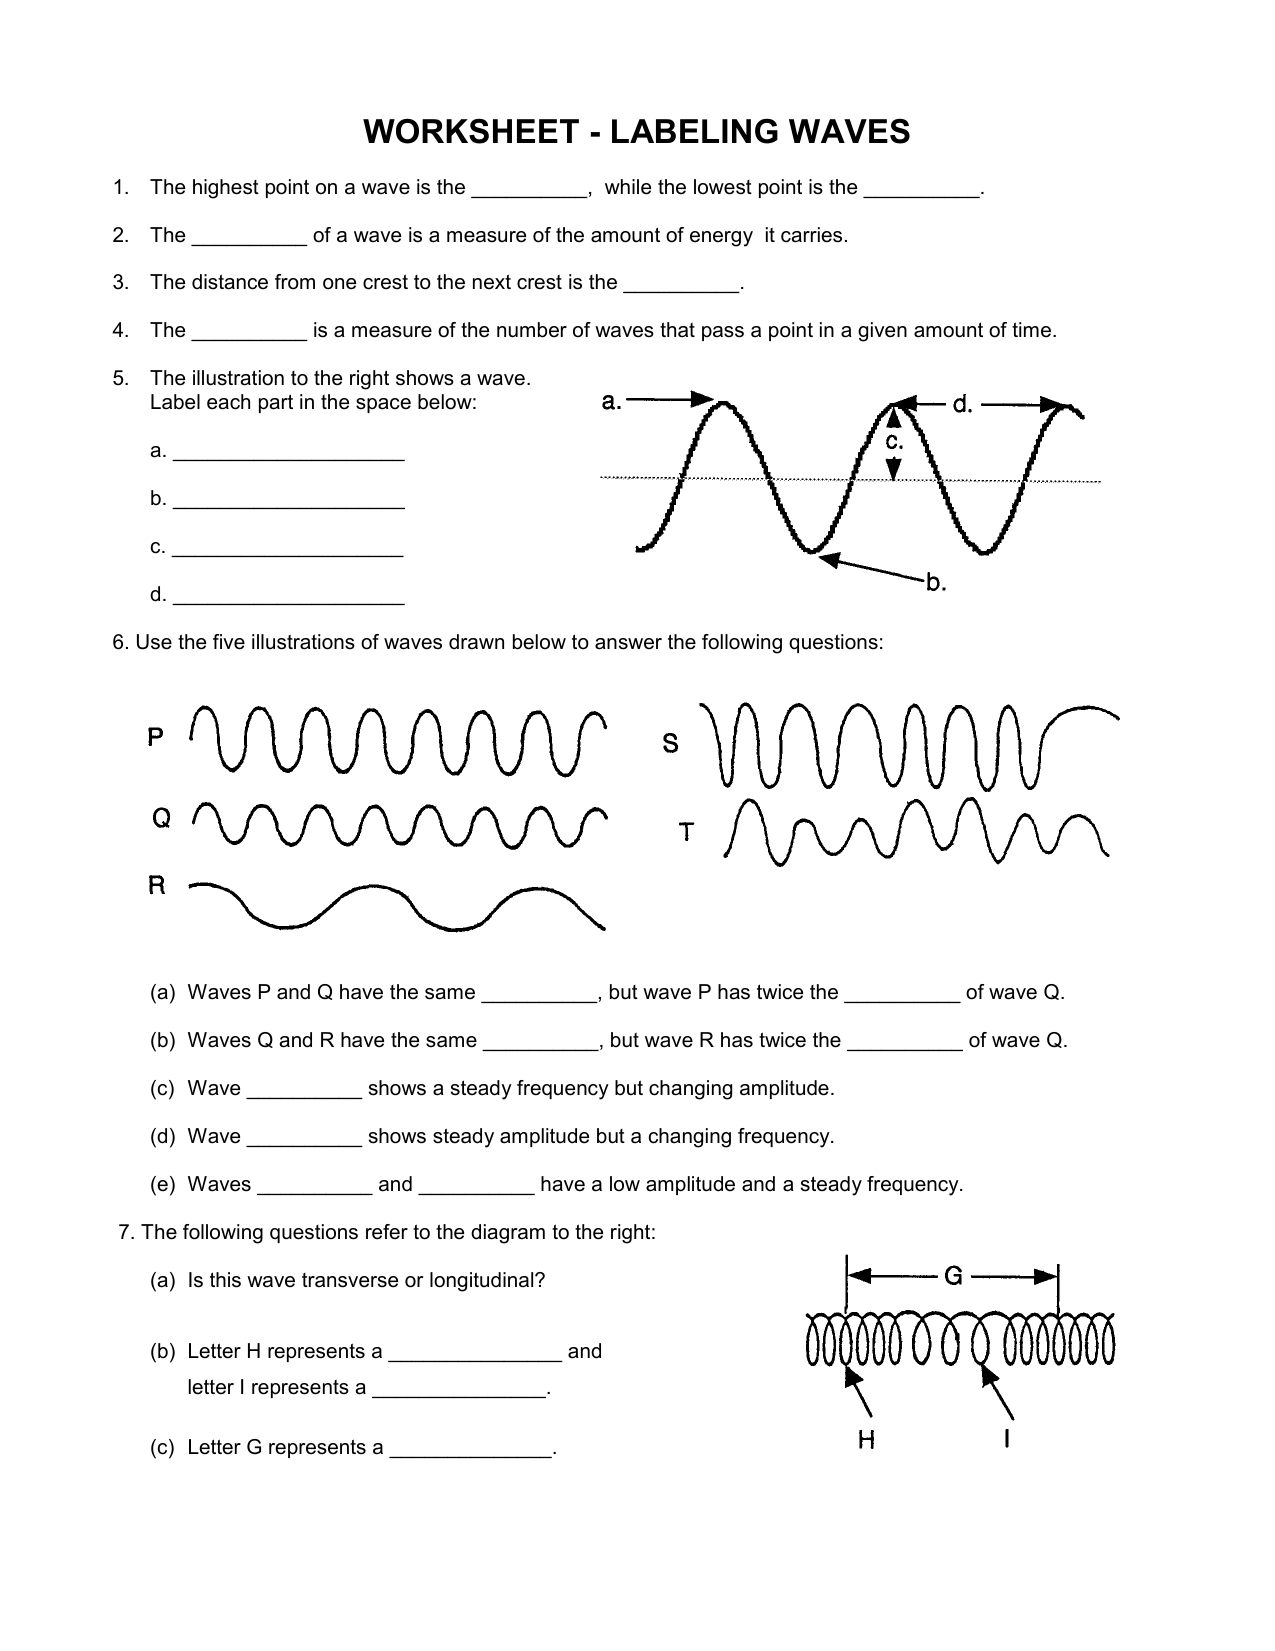 Transverse V Longitudinal Wave Worksheet 2b107dk